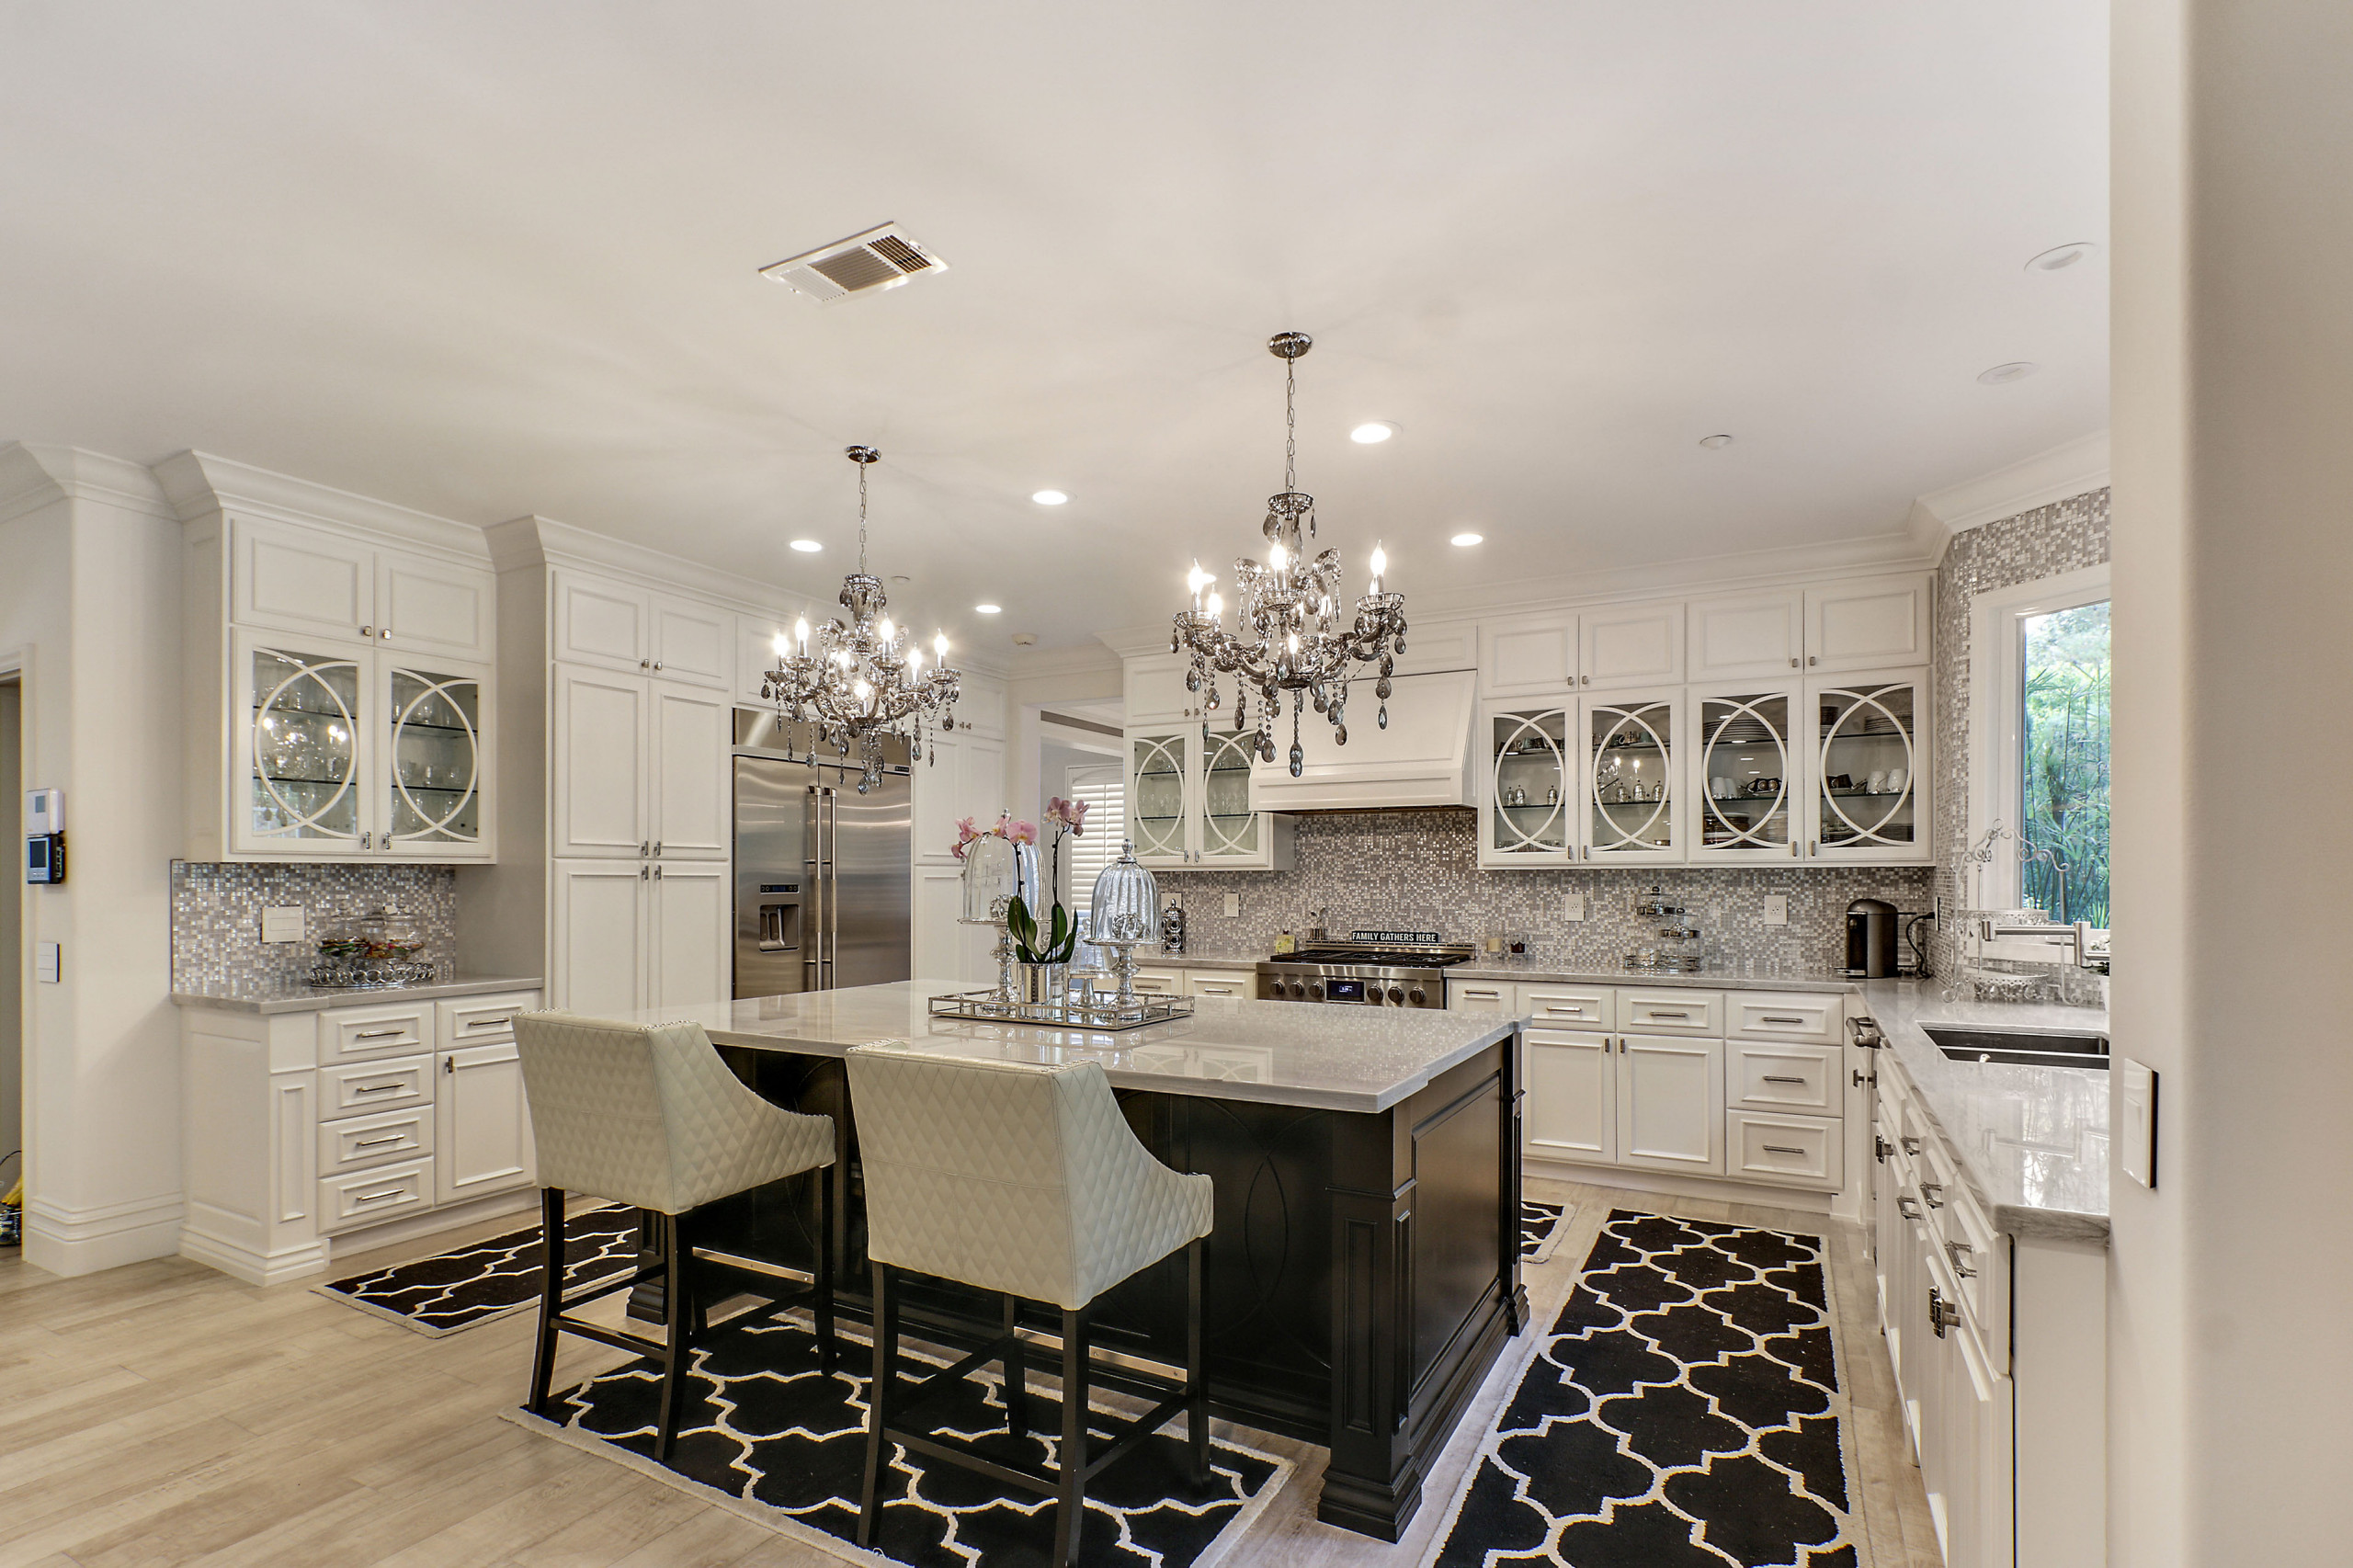 Ebony and Ivory Dream Kitchen